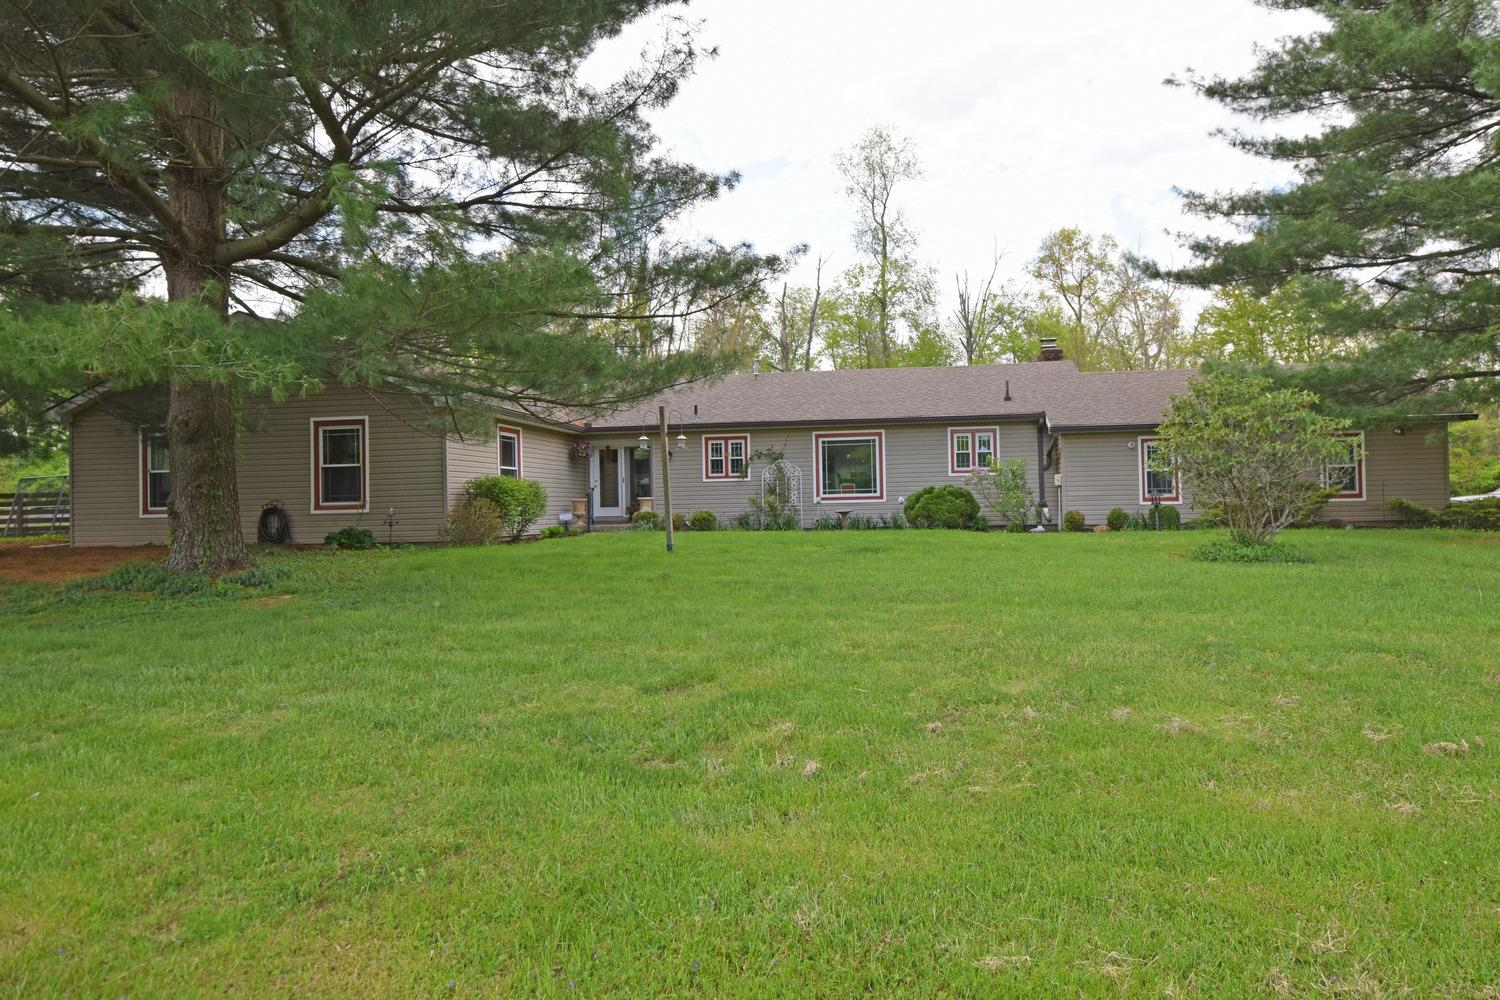 1678 Apgar Rd Stonelick Twp., OH